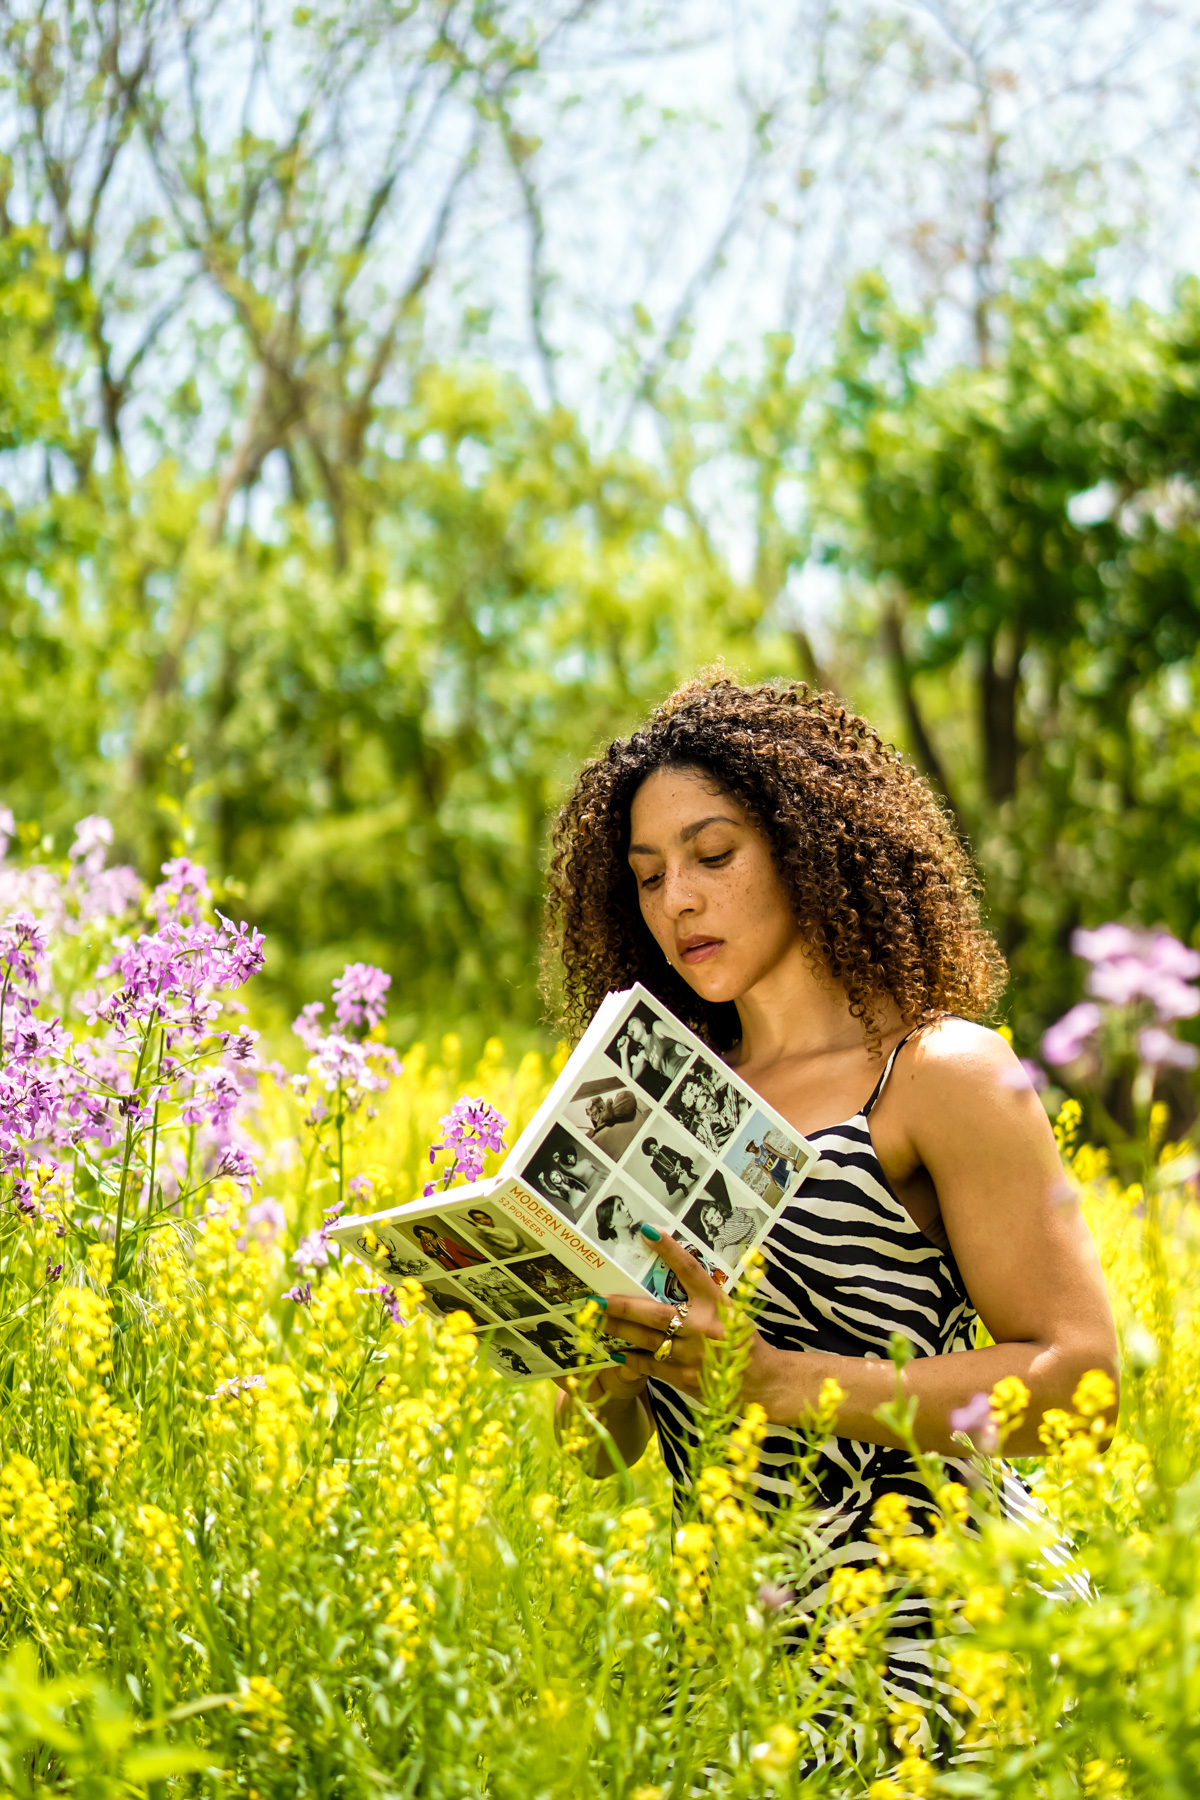 flowers, fashion blogger tips articles, what to do in quarantine, style tips and tricks every girl, black fashion blogger inspiration, flowers in bloom